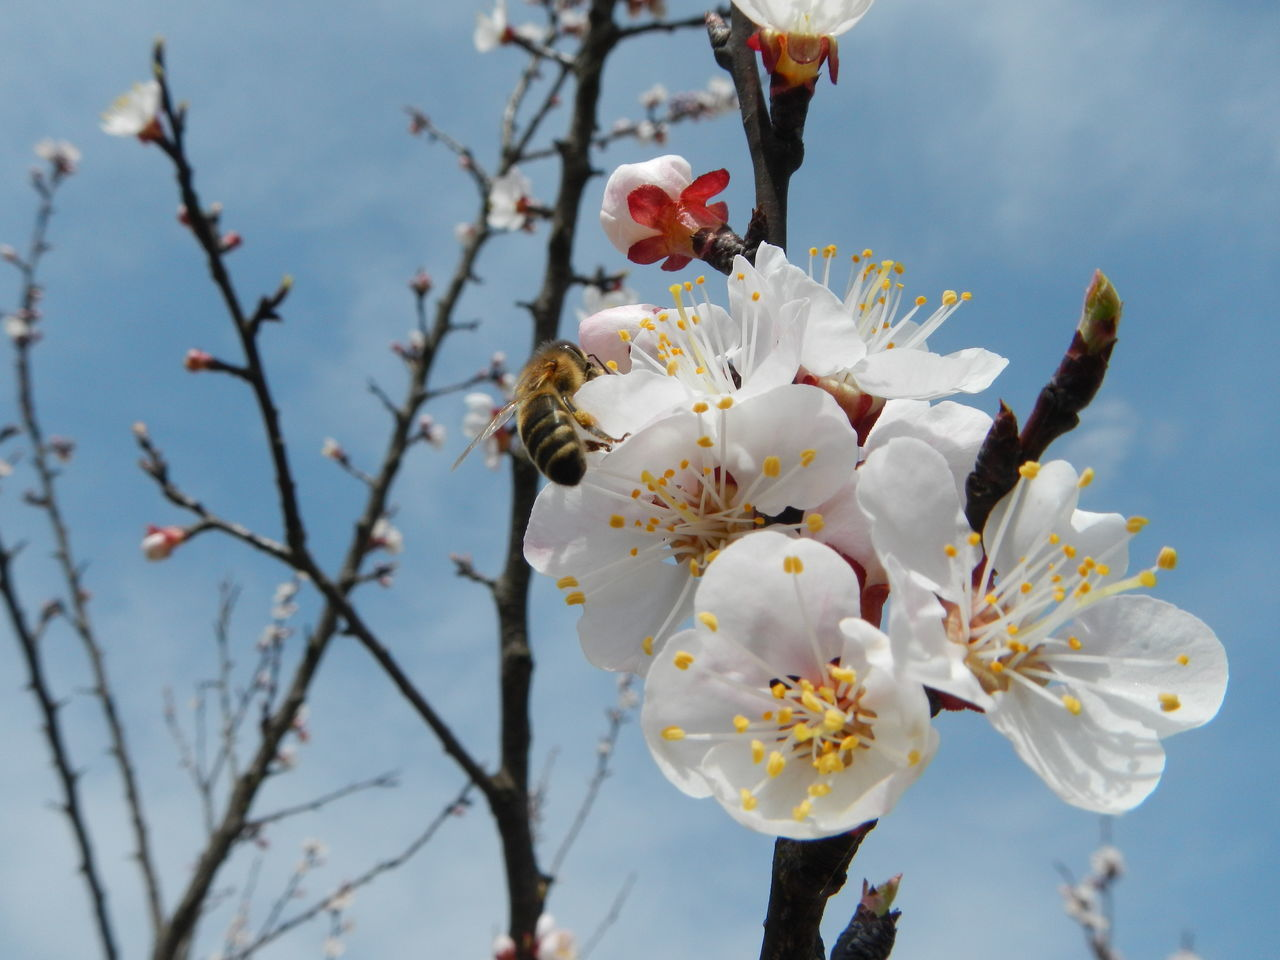 Bee At Work Apricot Apricot Blossoms Apricot Flowers Apricot Tree ApricotBlossom Bee Bee And Flower Blossom Close-up Flower Flower Head Growth In Bloom Nature Petal White Color Urban Spring Fever Showcase April Blue Wave Outdoors Wildlife Nature's Diversities